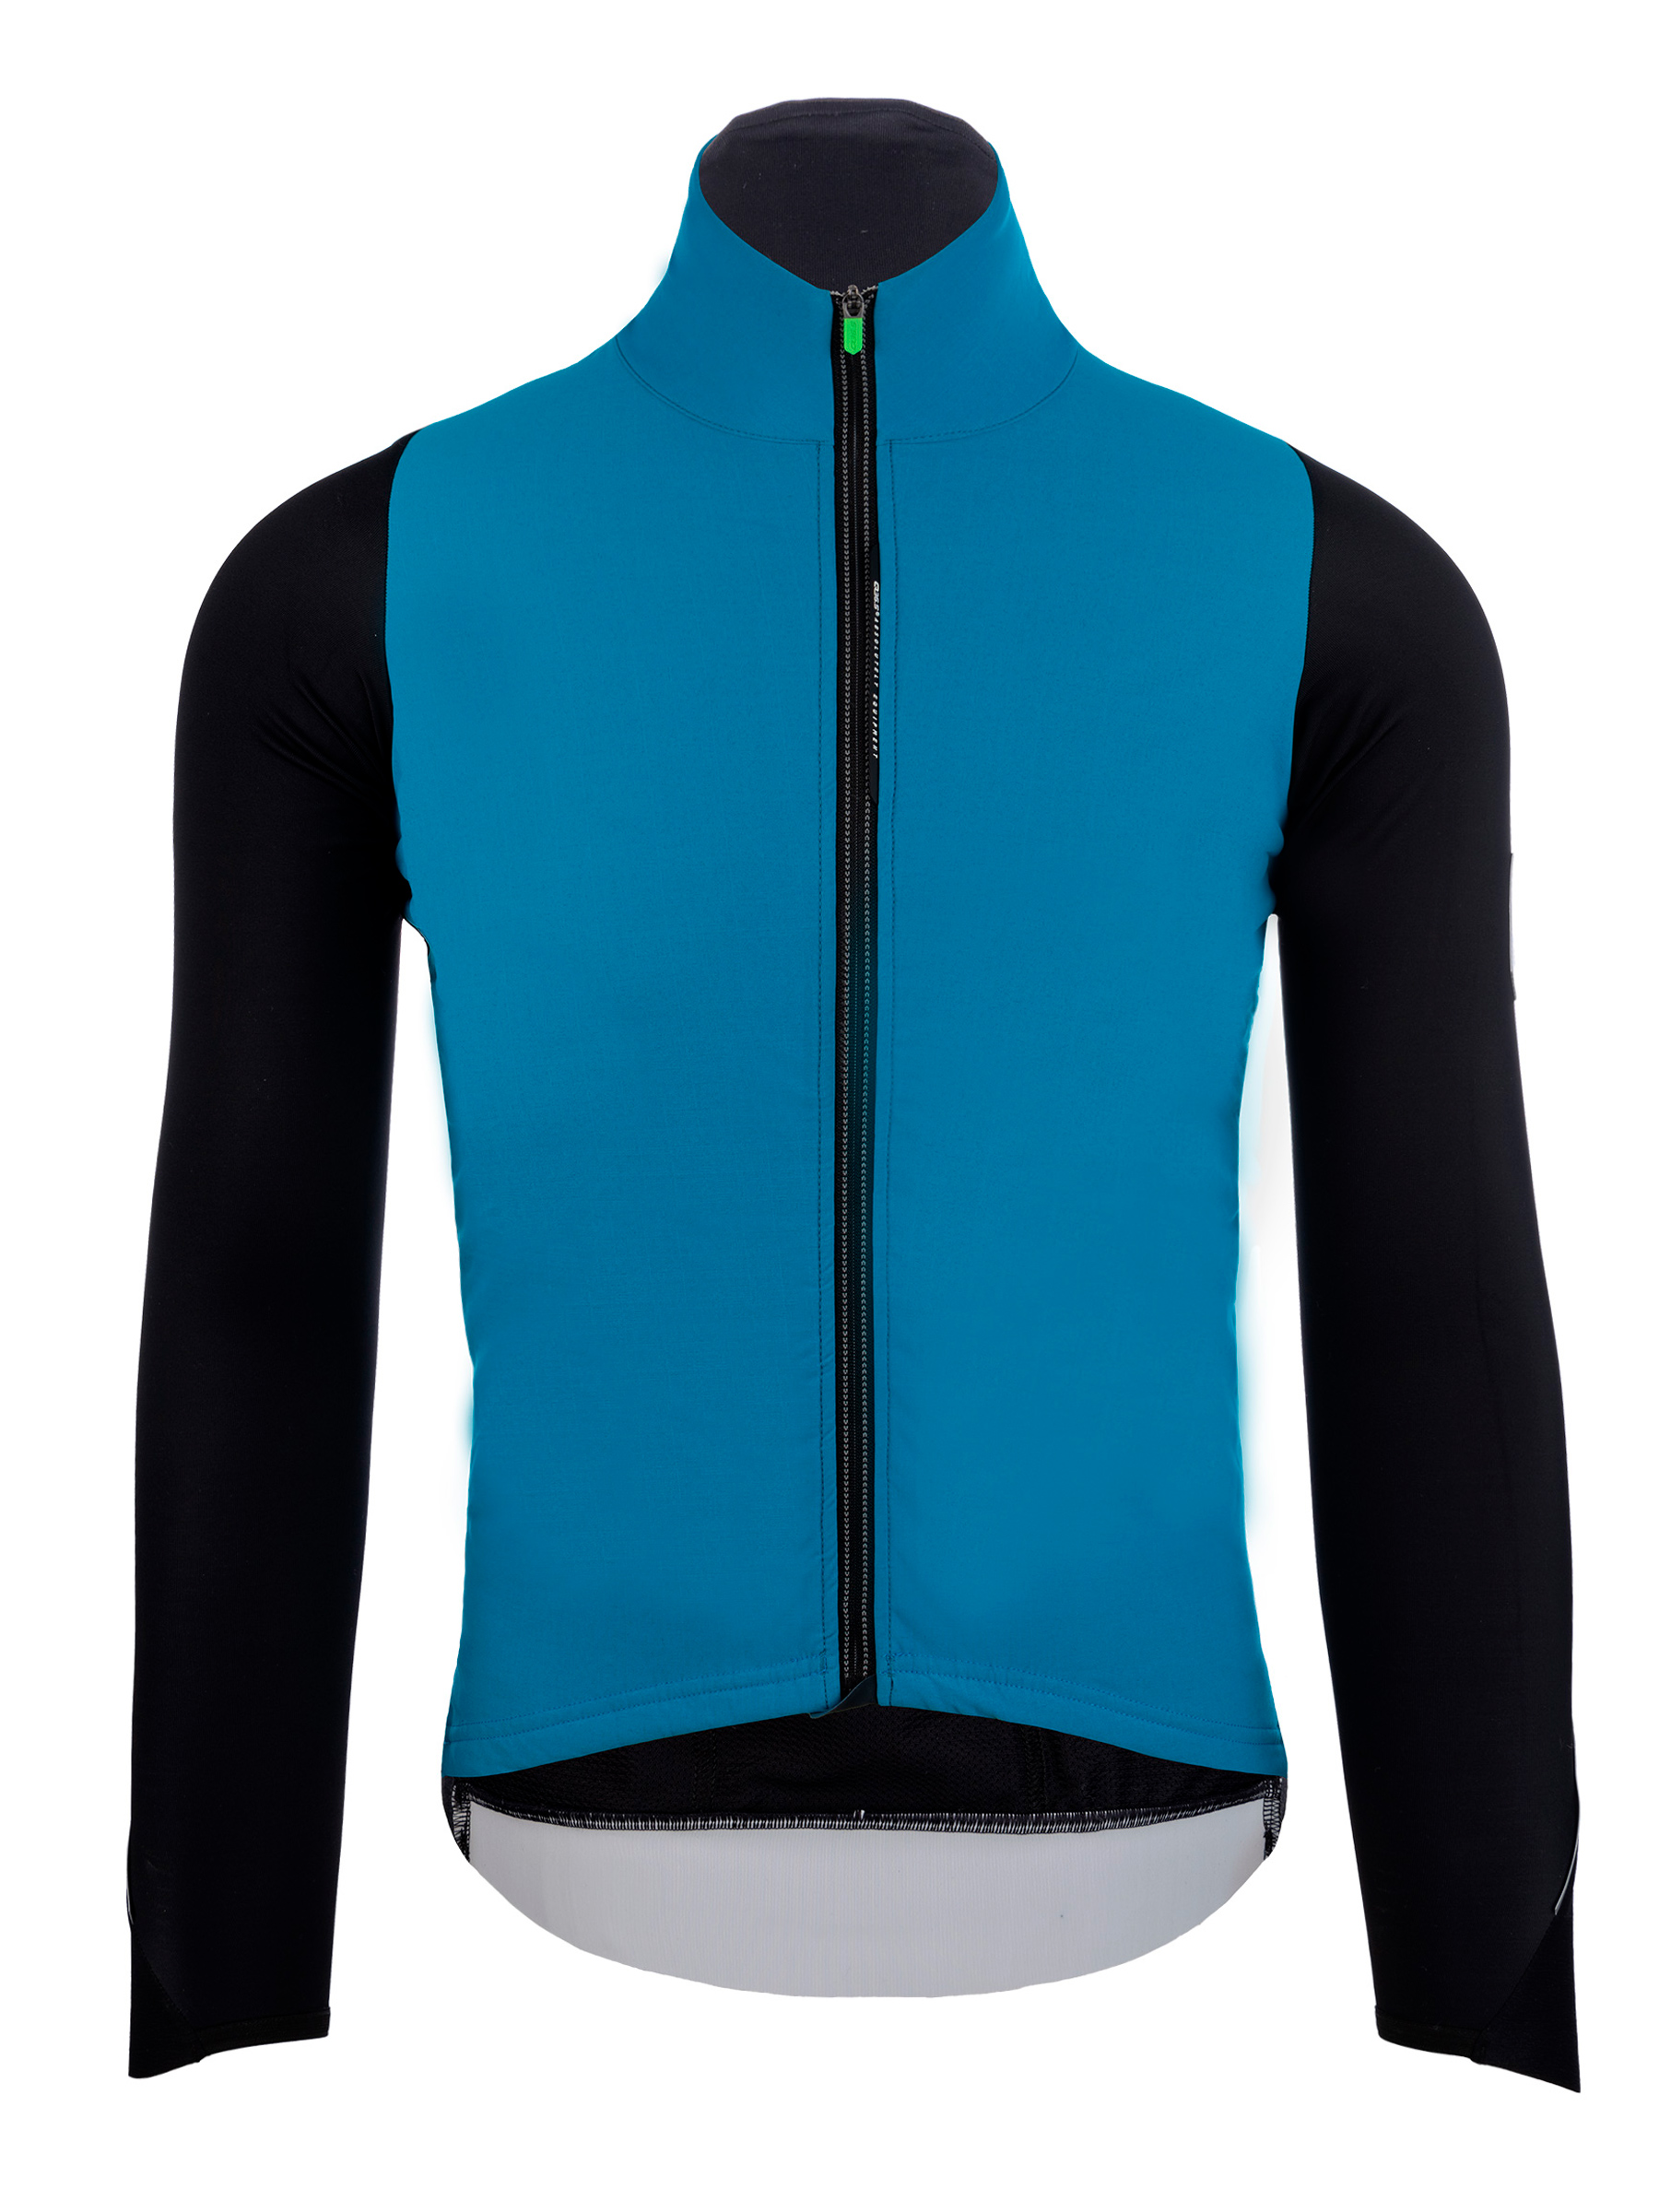 Mens cycling jacket Air Insulation Q36.5 - blue